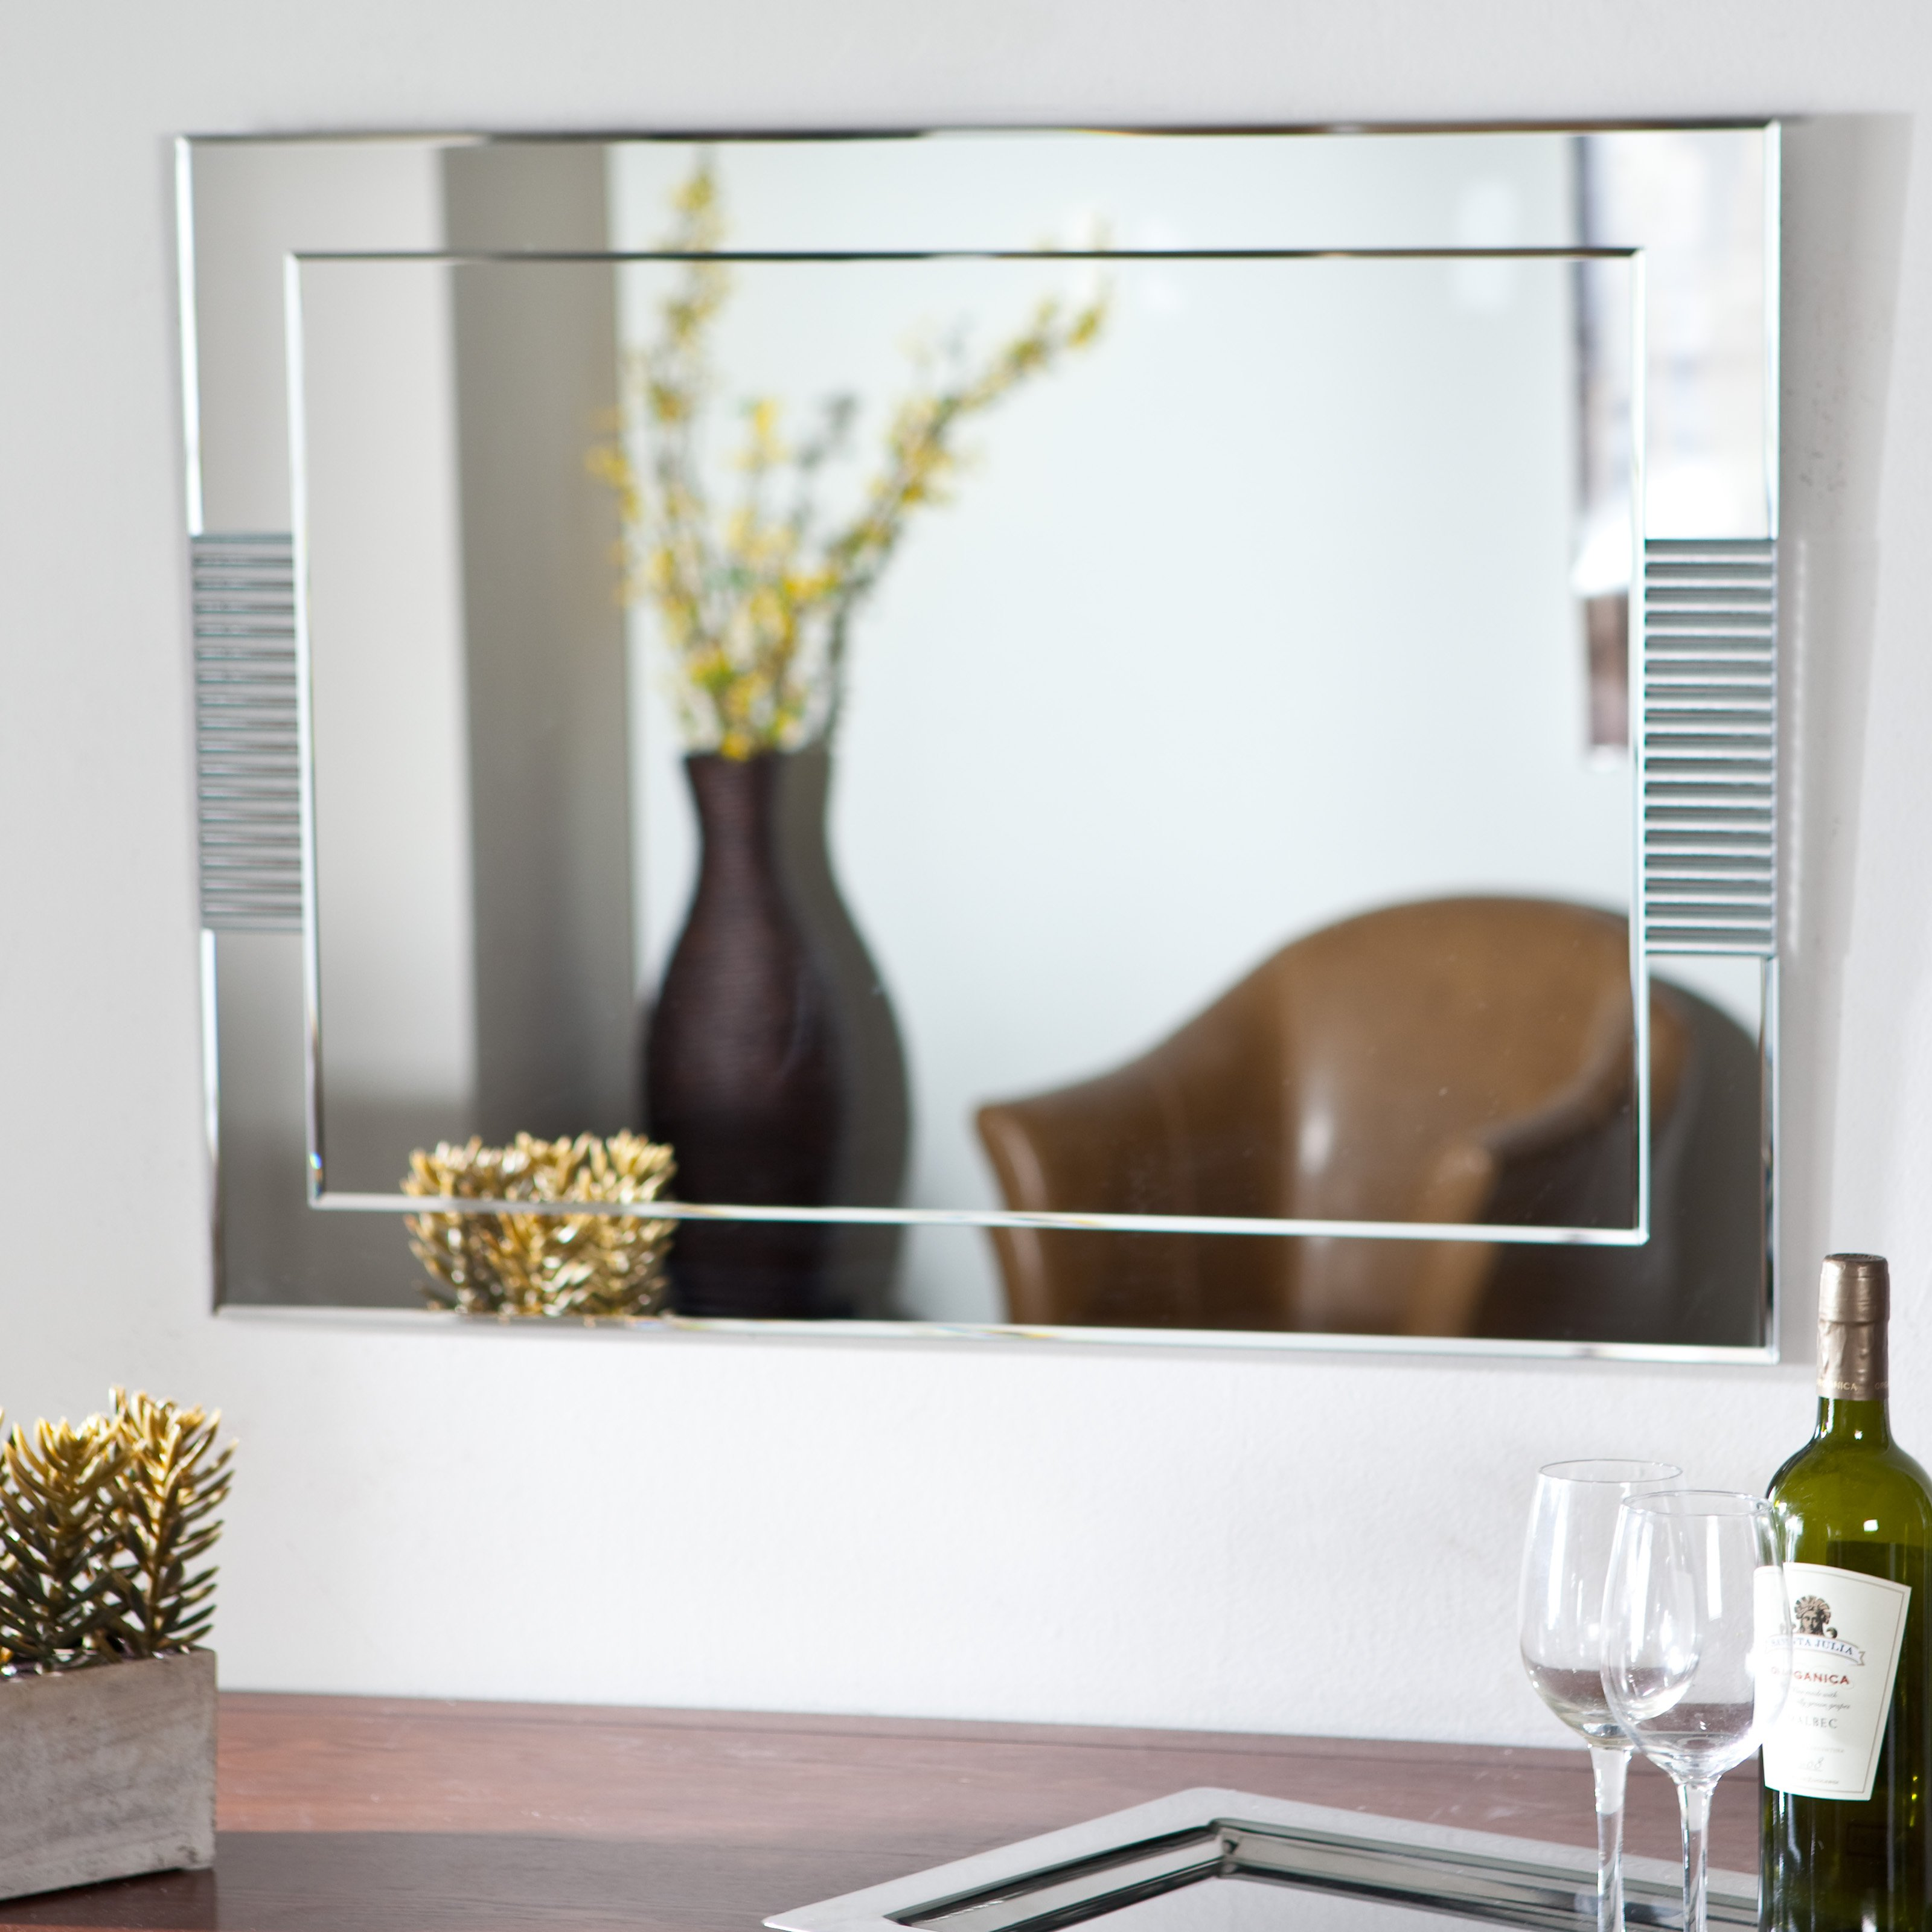 Décor Wonderland Francisca Large Frameless Wall Mirror - 23.6W x 31.5H in.